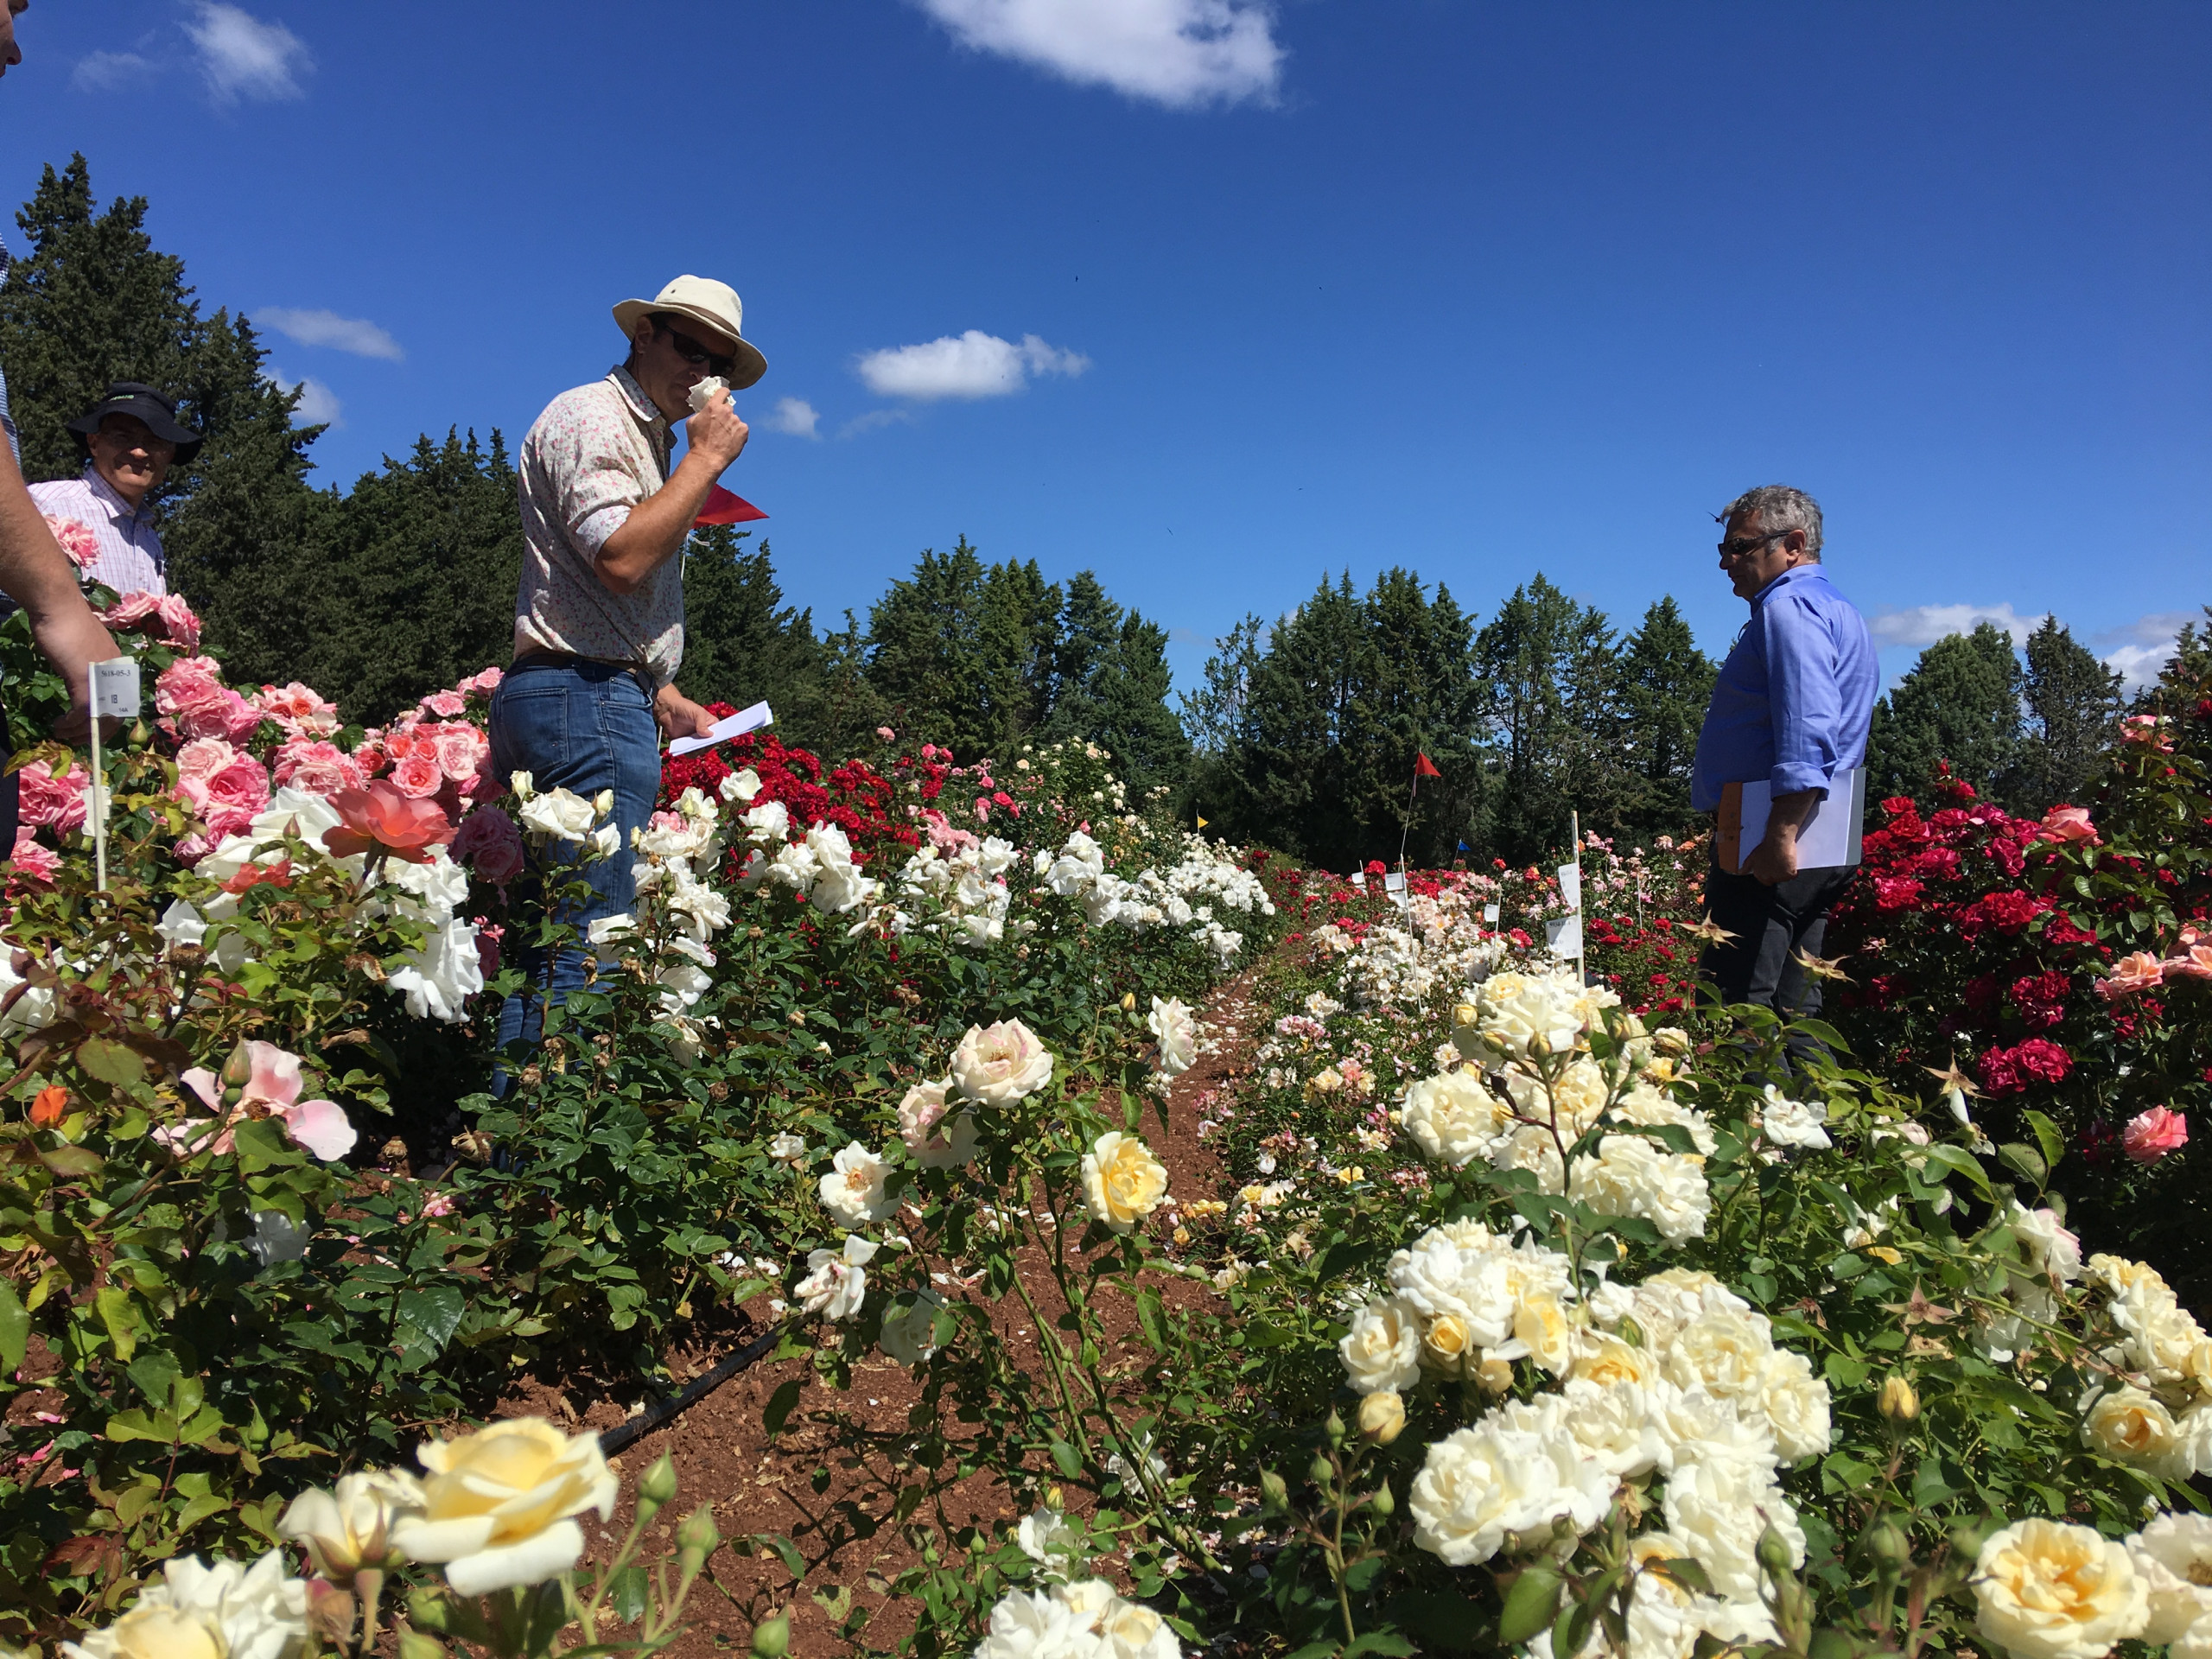 Tim Hobbs smelling the scented roses in the test fields